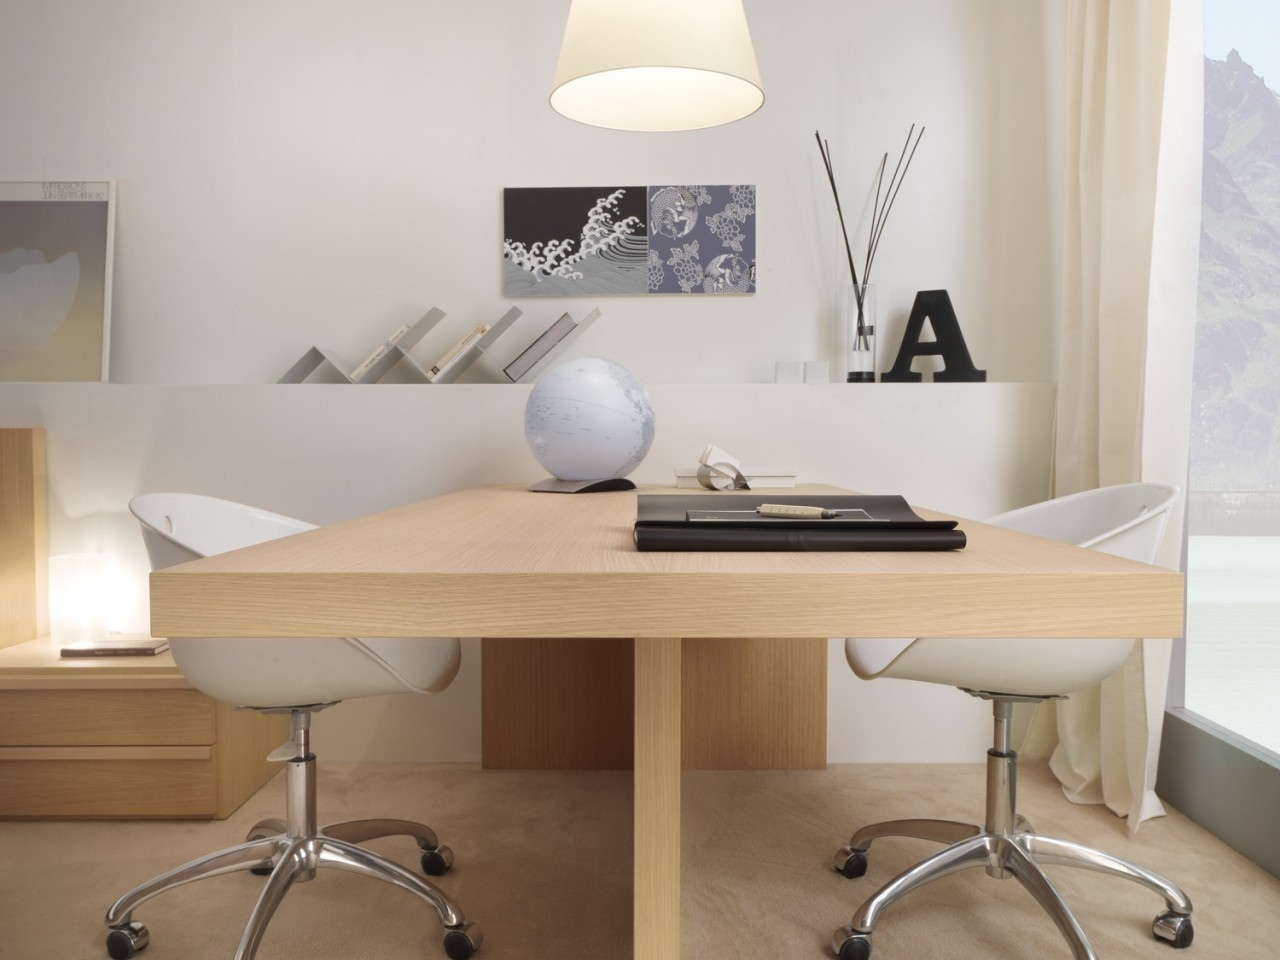 30 inspirational home office desks - Home Office Desk